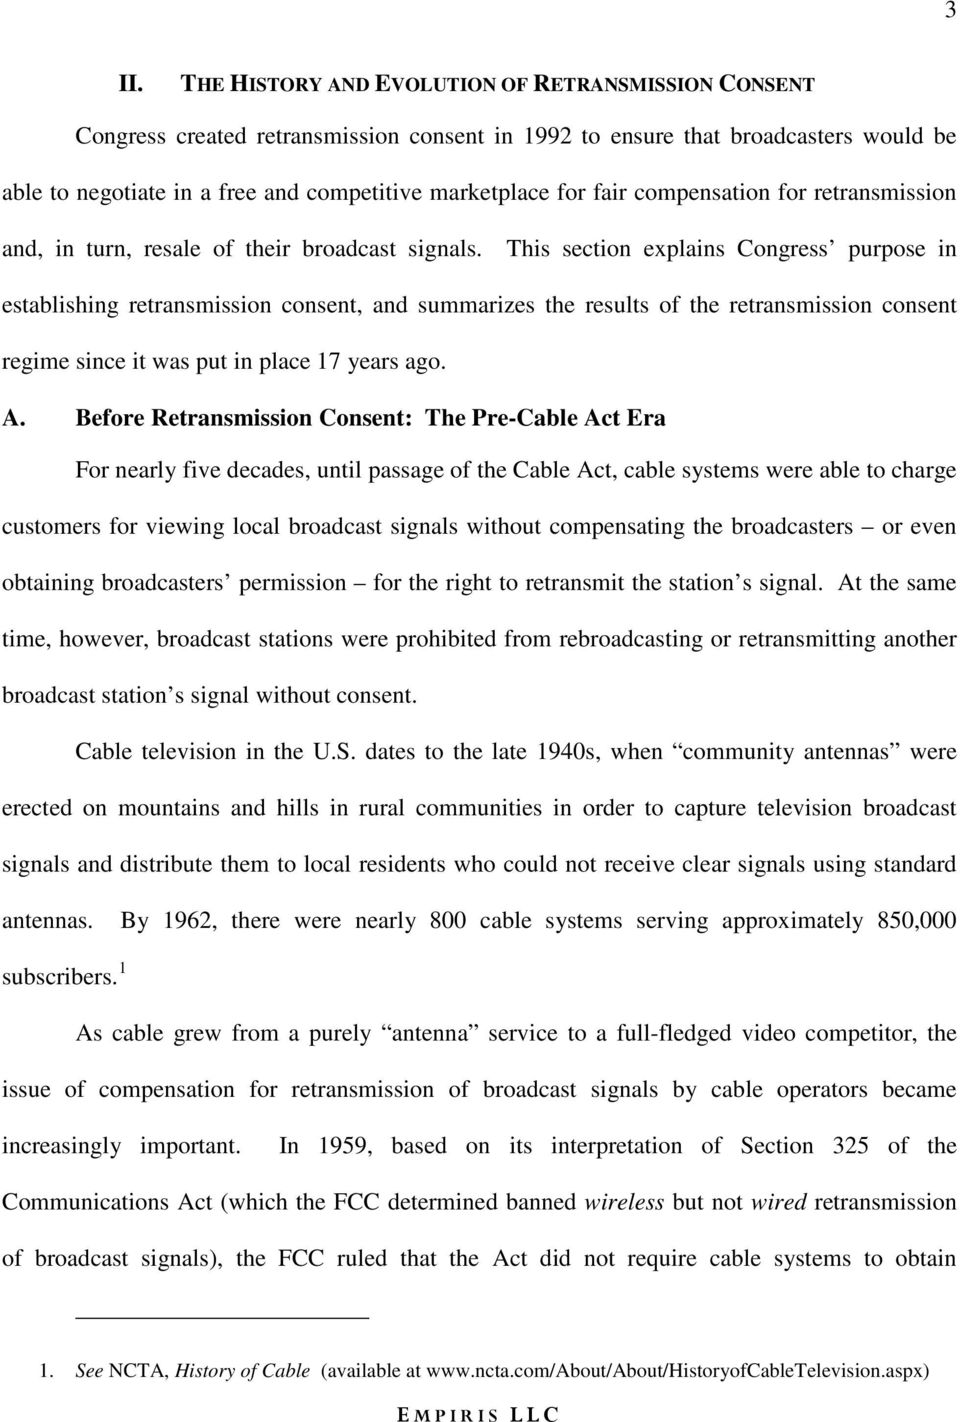 This section explains Congress purpose in establishing retransmission consent, and summarizes the results of the retransmission consent regime since it was put in place 17 years ago. A.